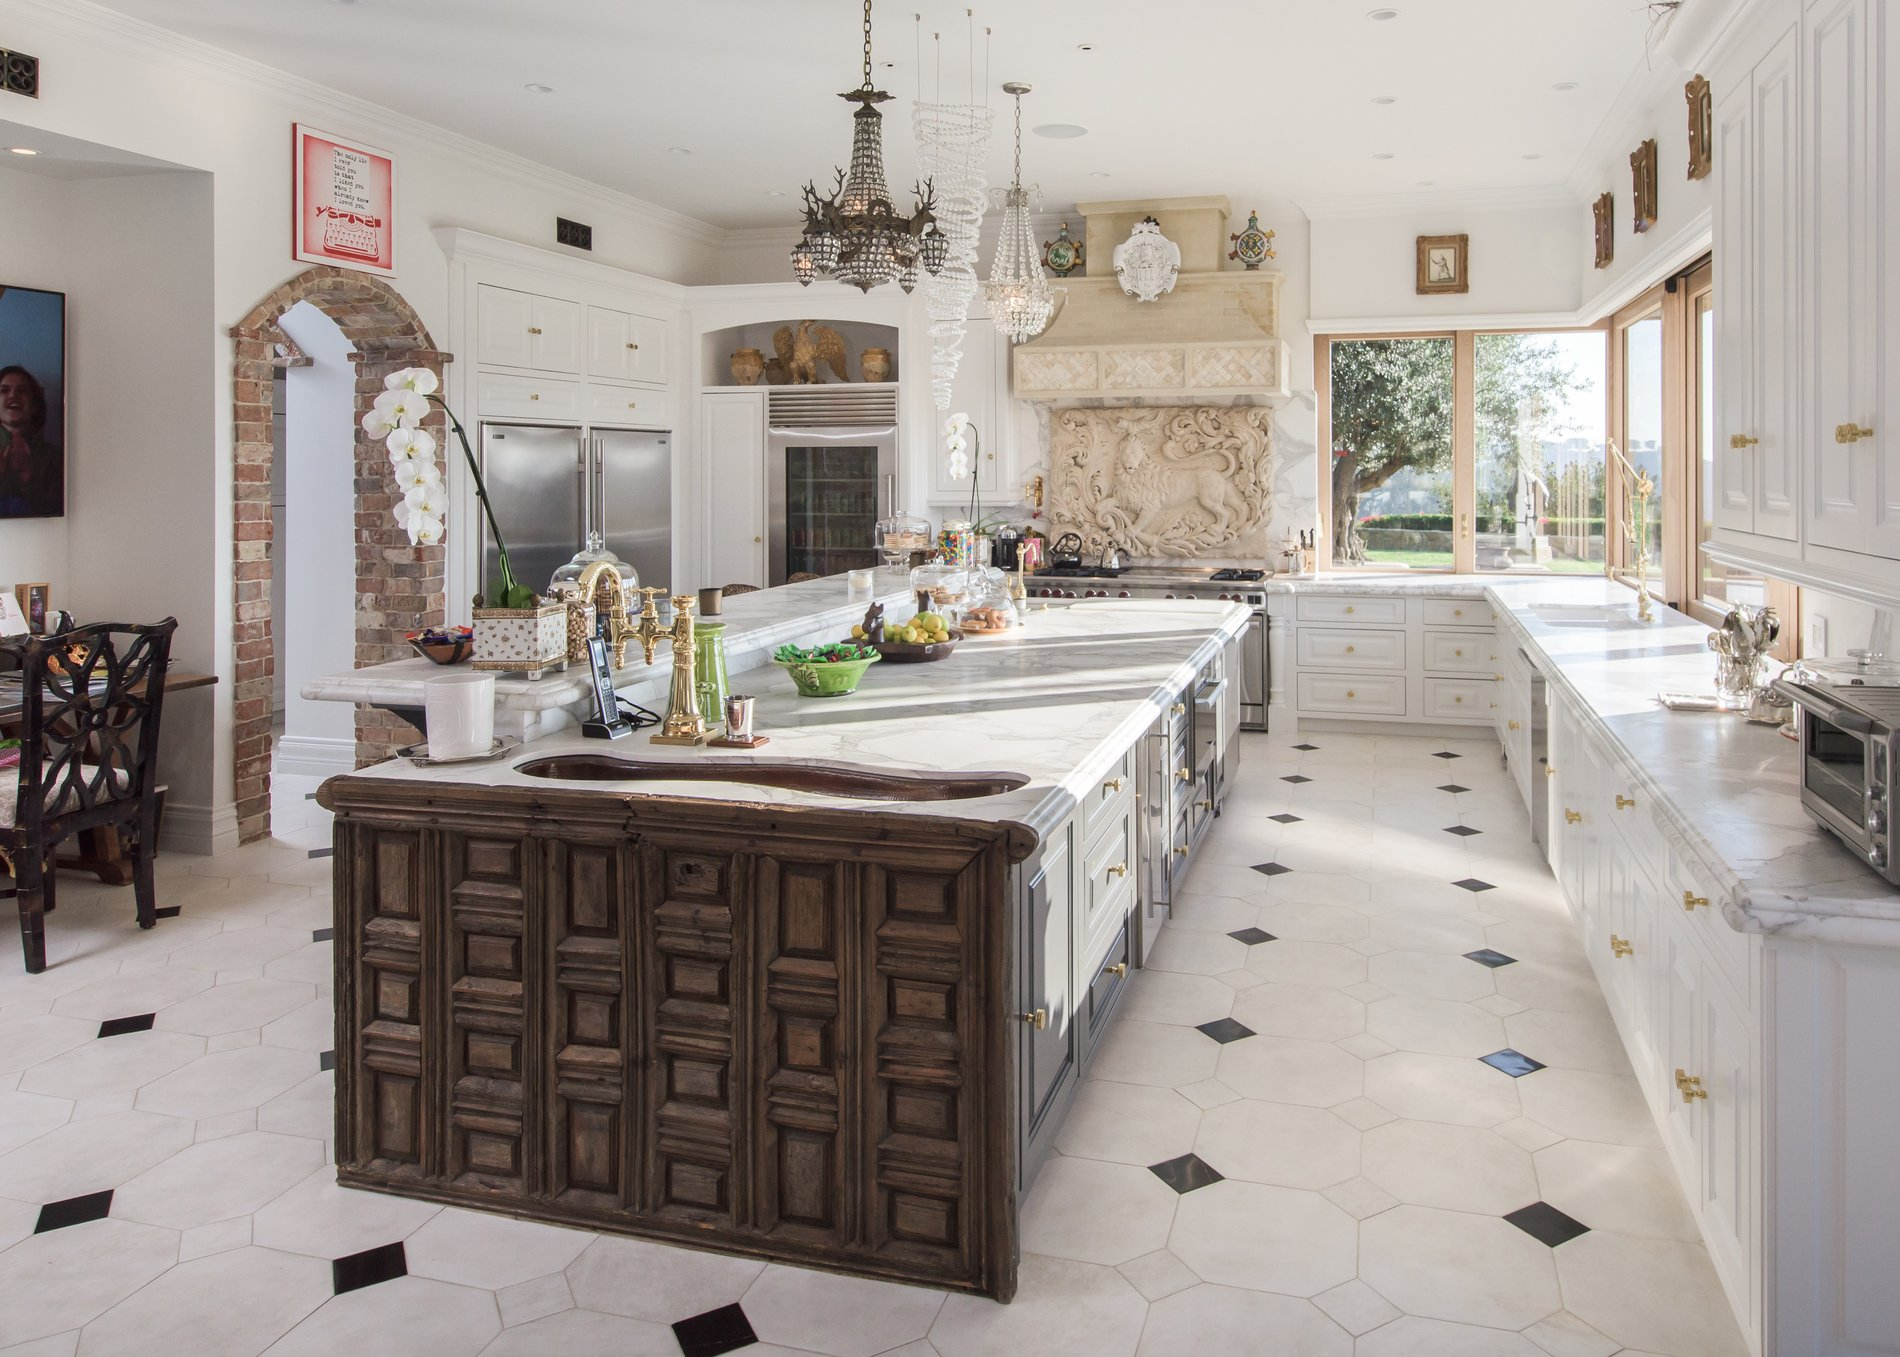 56 million dollar kitchen